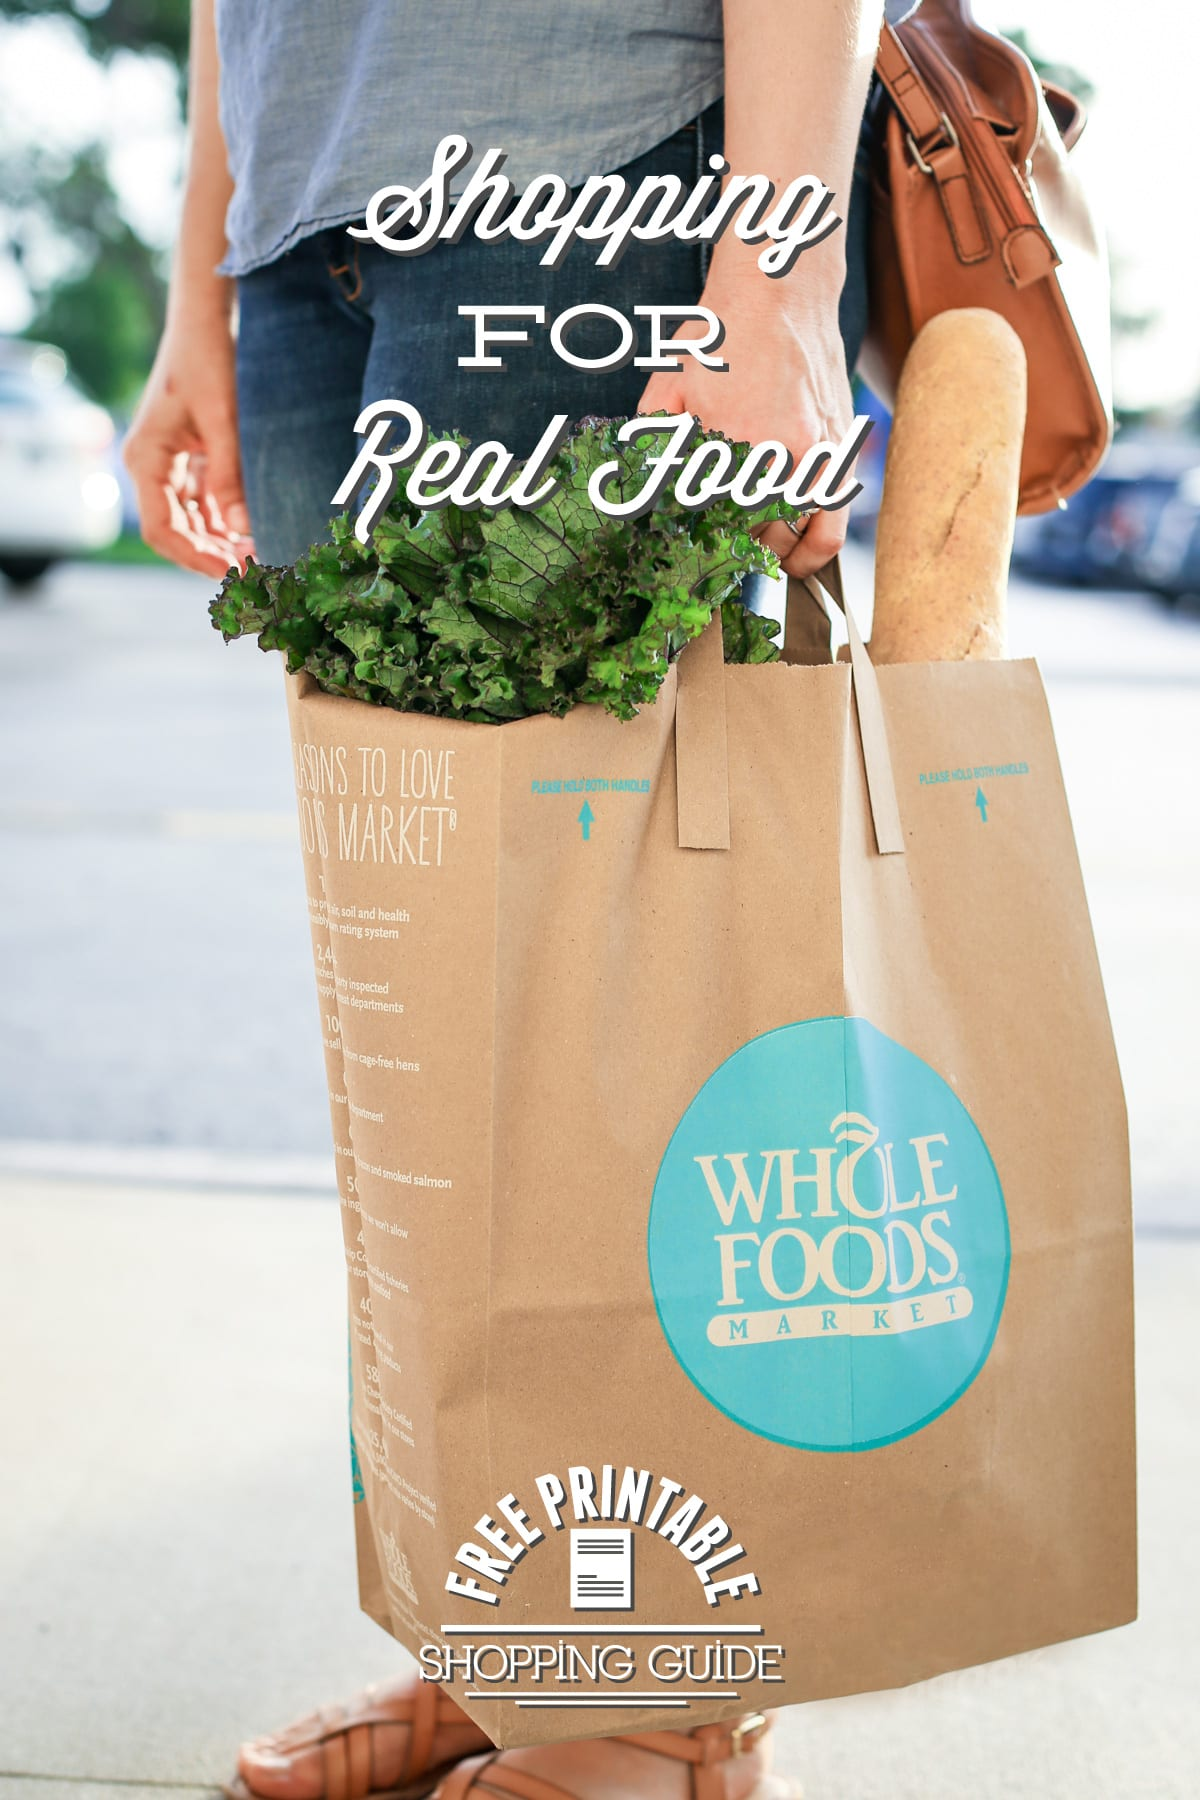 Whole foods case analysis research paper